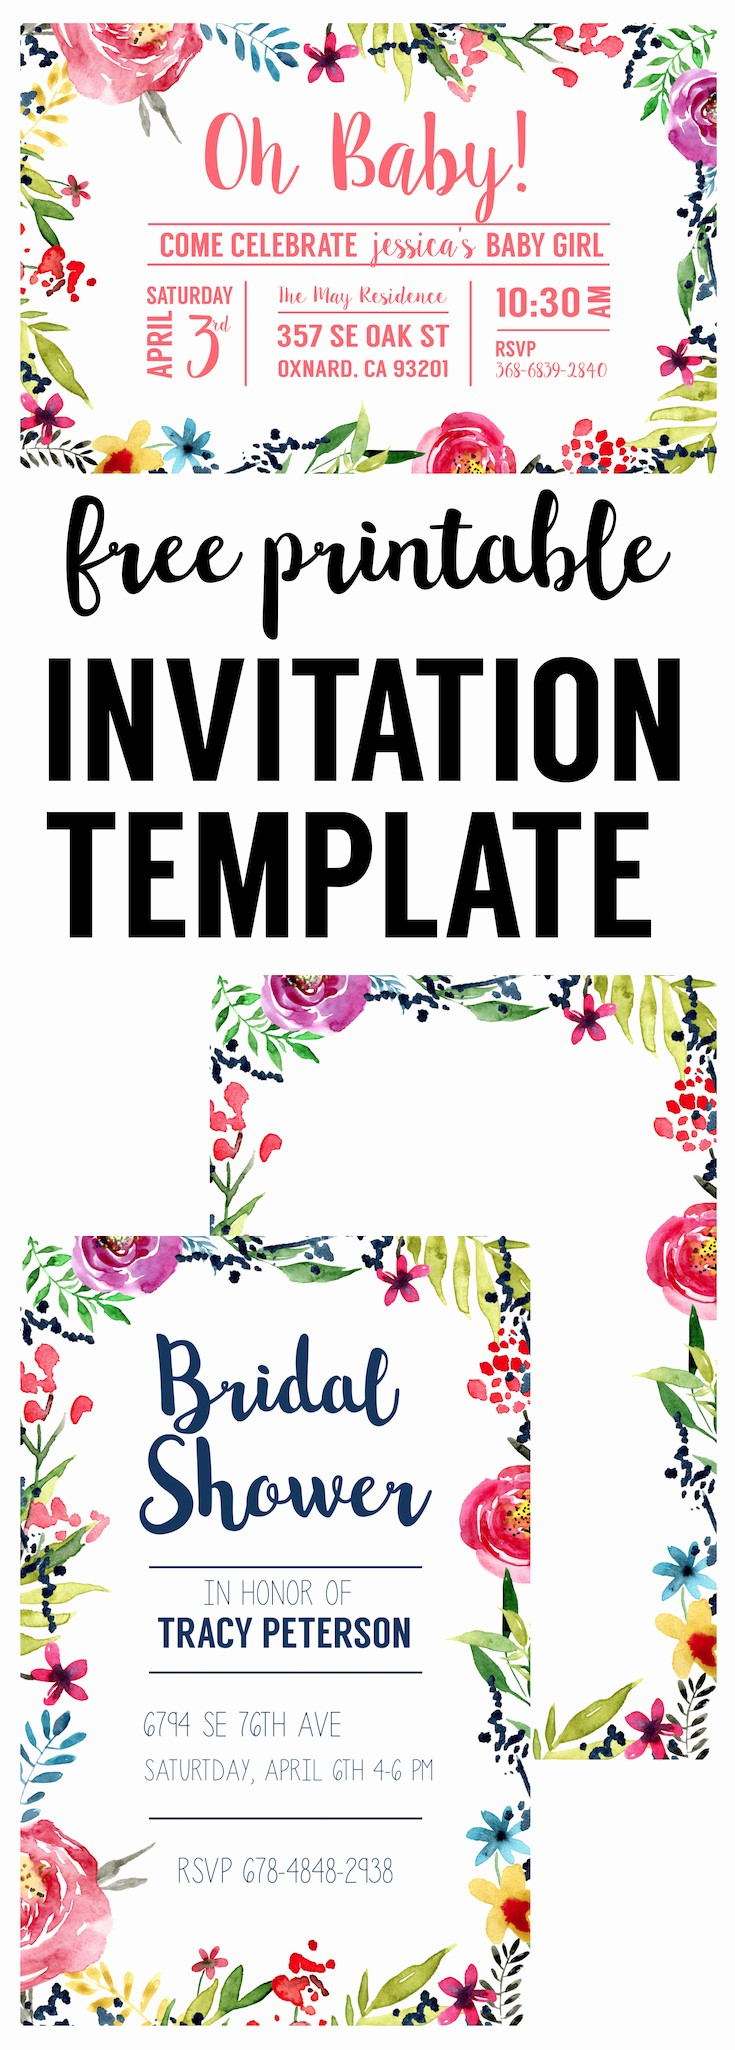 Free Printable Party Invitations Templates Lovely Floral Borders Invitations Free Printable Invitation